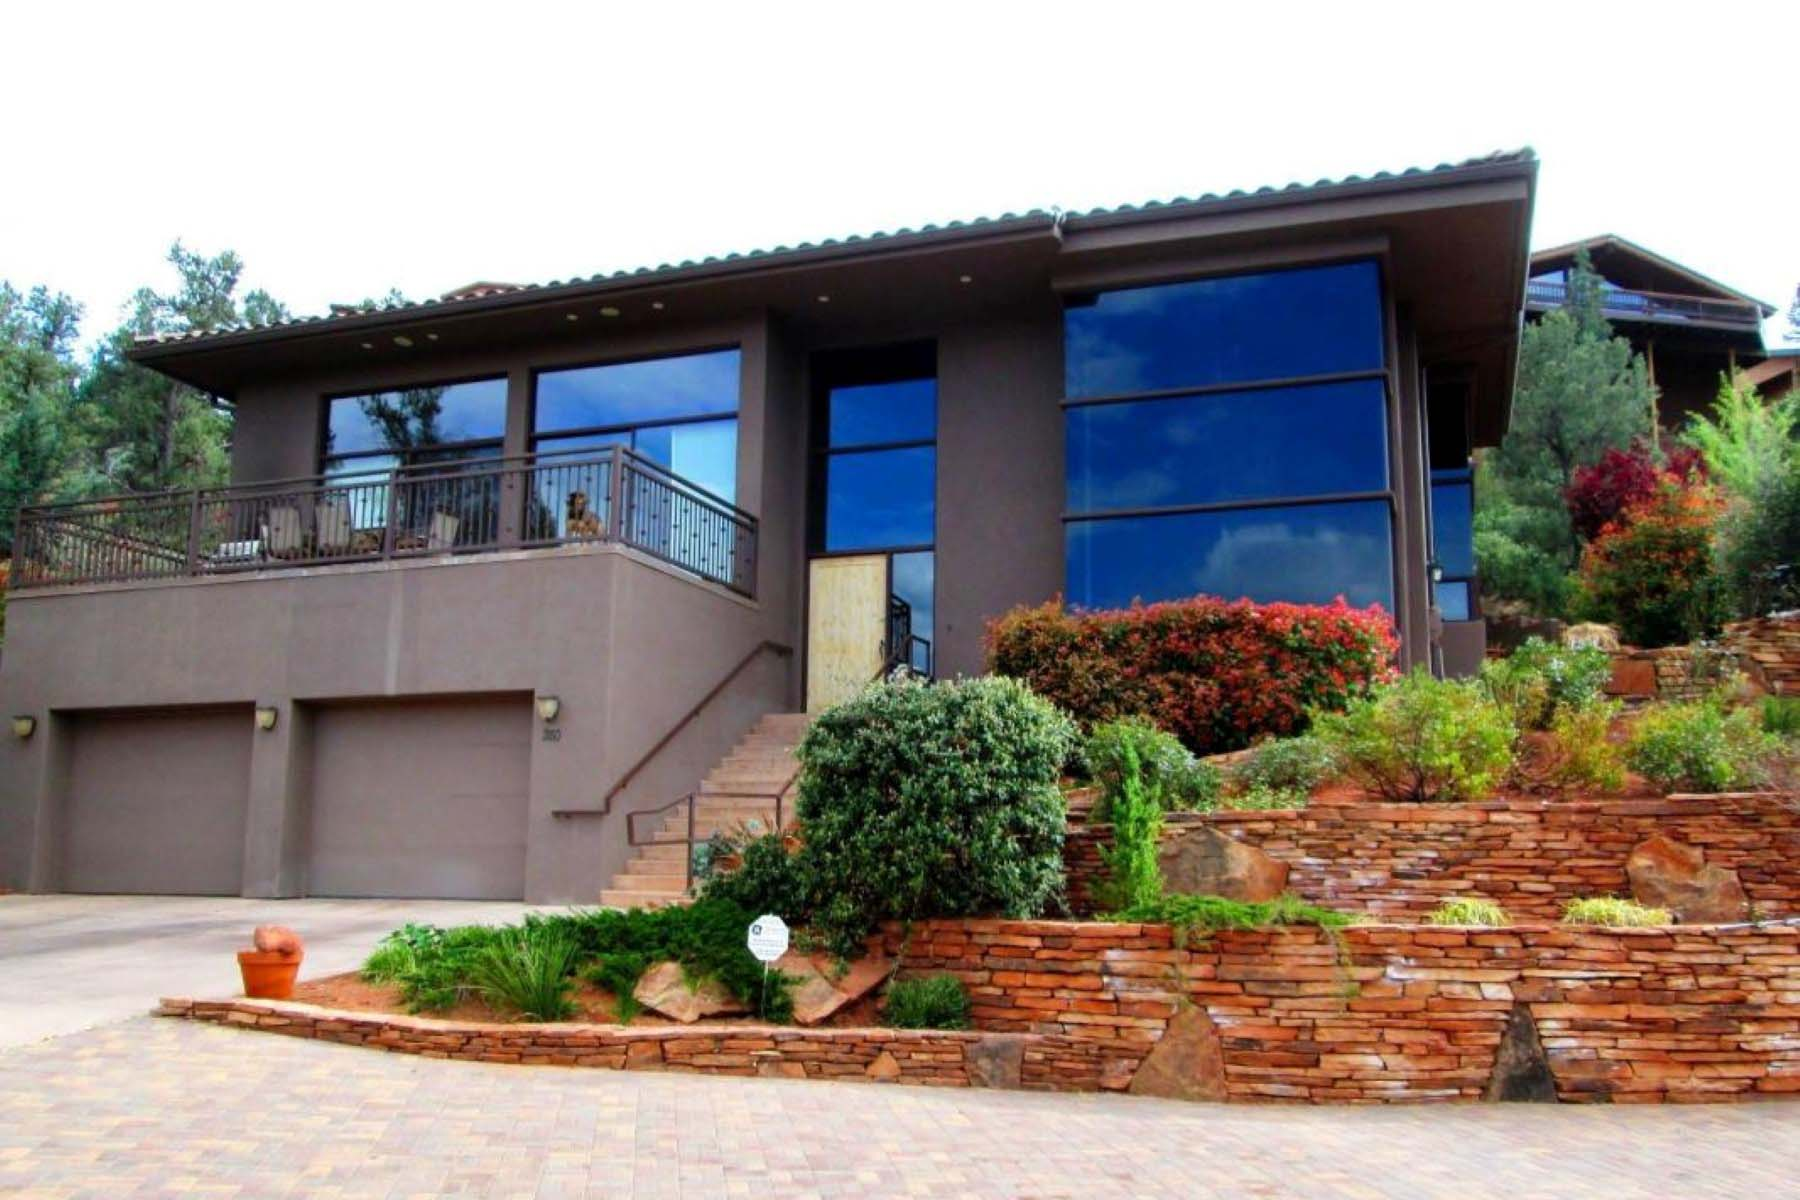 獨棟家庭住宅 為 出售 在 Contemporary home located in the Rolling Hills Subdivision. 280 Barcelona Rd Sedona, 亞利桑那州 86336 美國